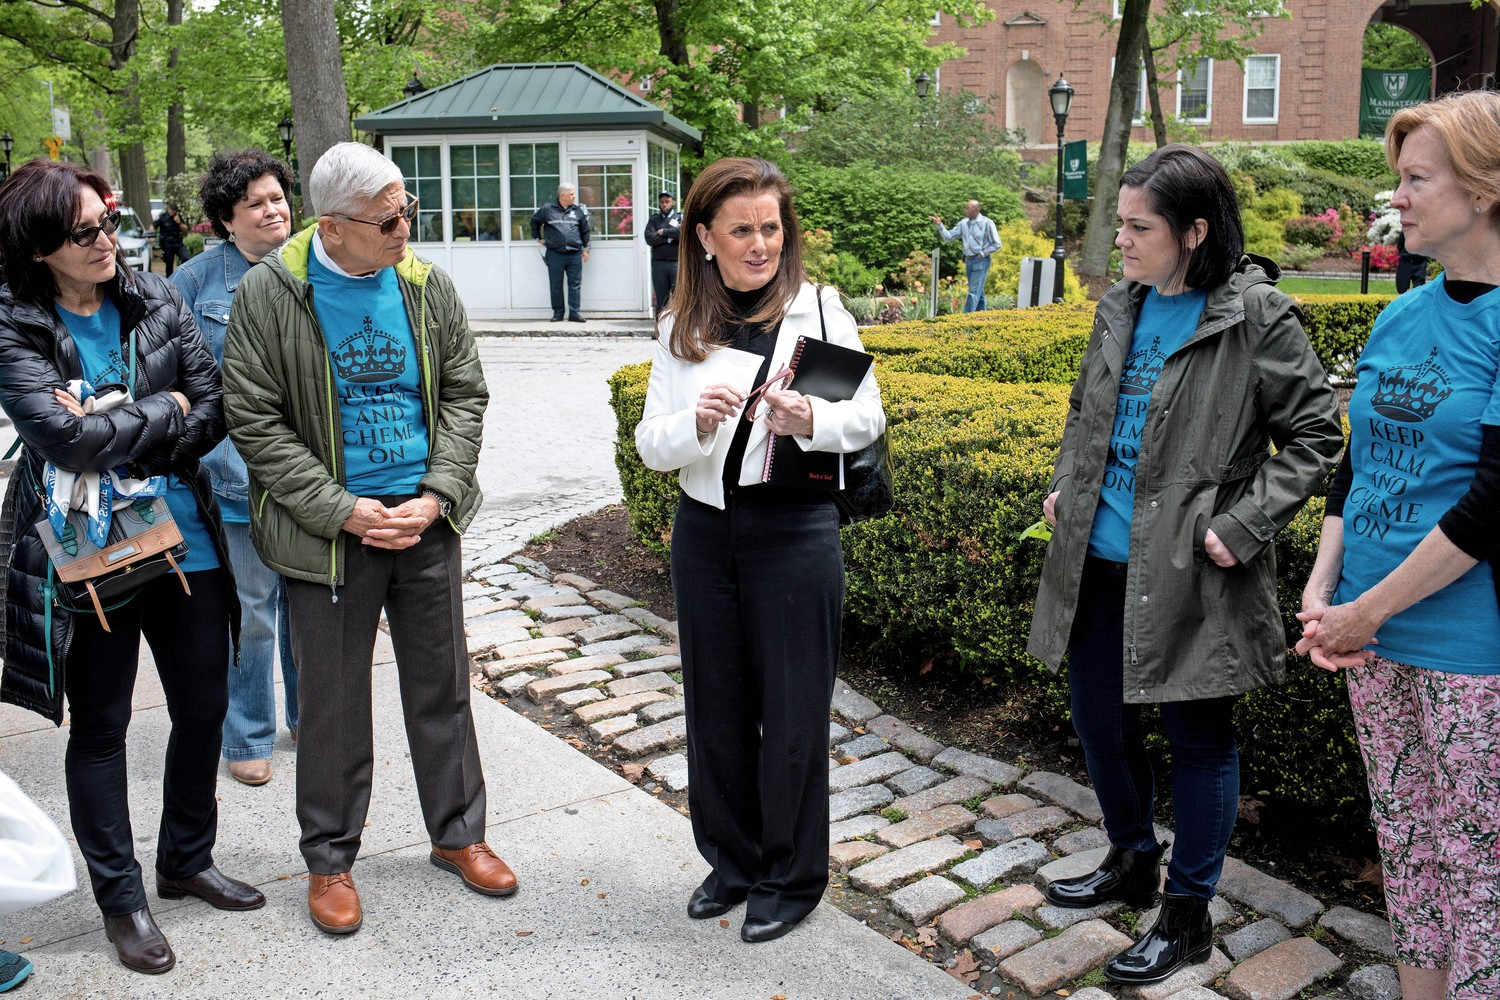 'I could your voice, and I was not alone,' said Ann Marie Flynn, a professor of chemical engineering at Manhattan College, after her preliminary termination hearing. Supporters gathered to protest Flynn's possible termination.